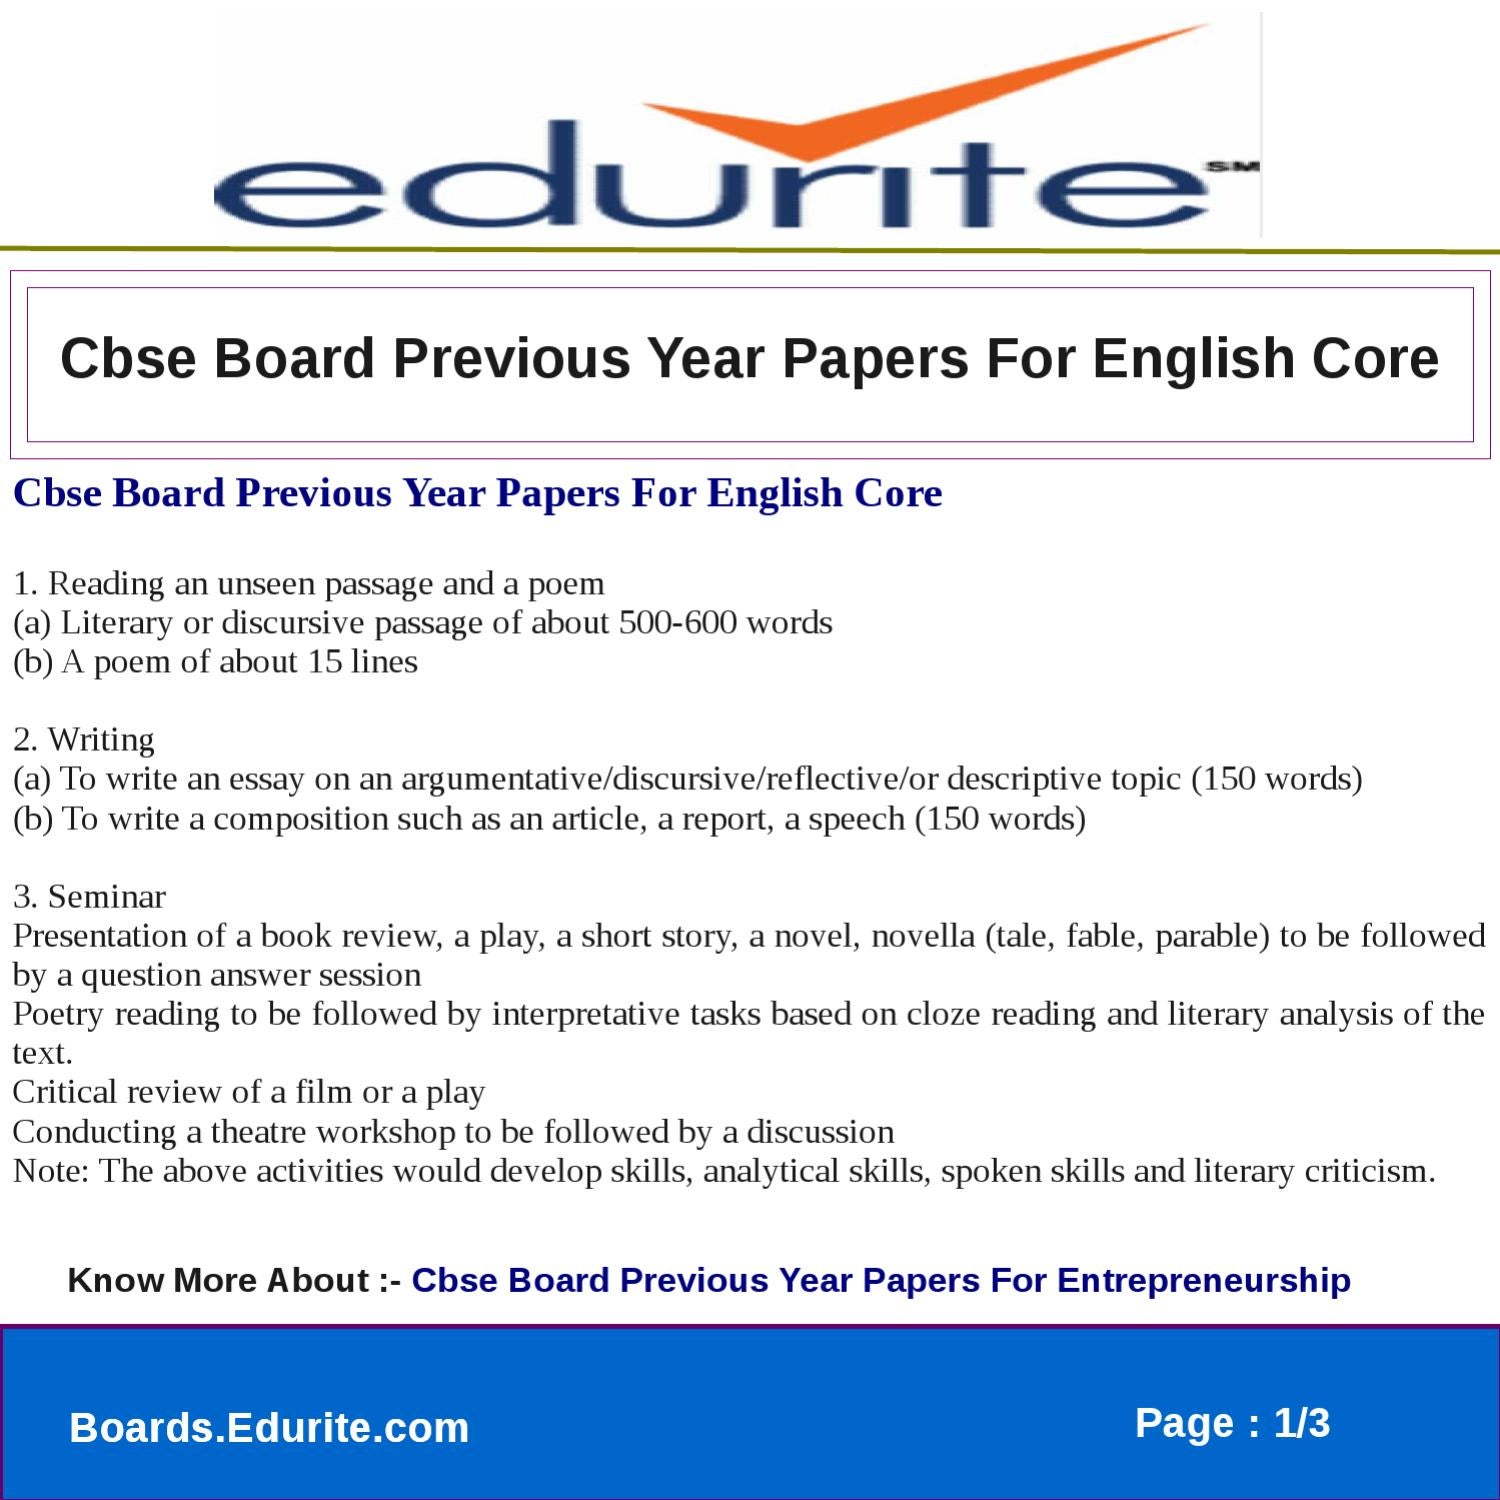 Cbse Board Previous Year Papers For English Core by deepak sharma